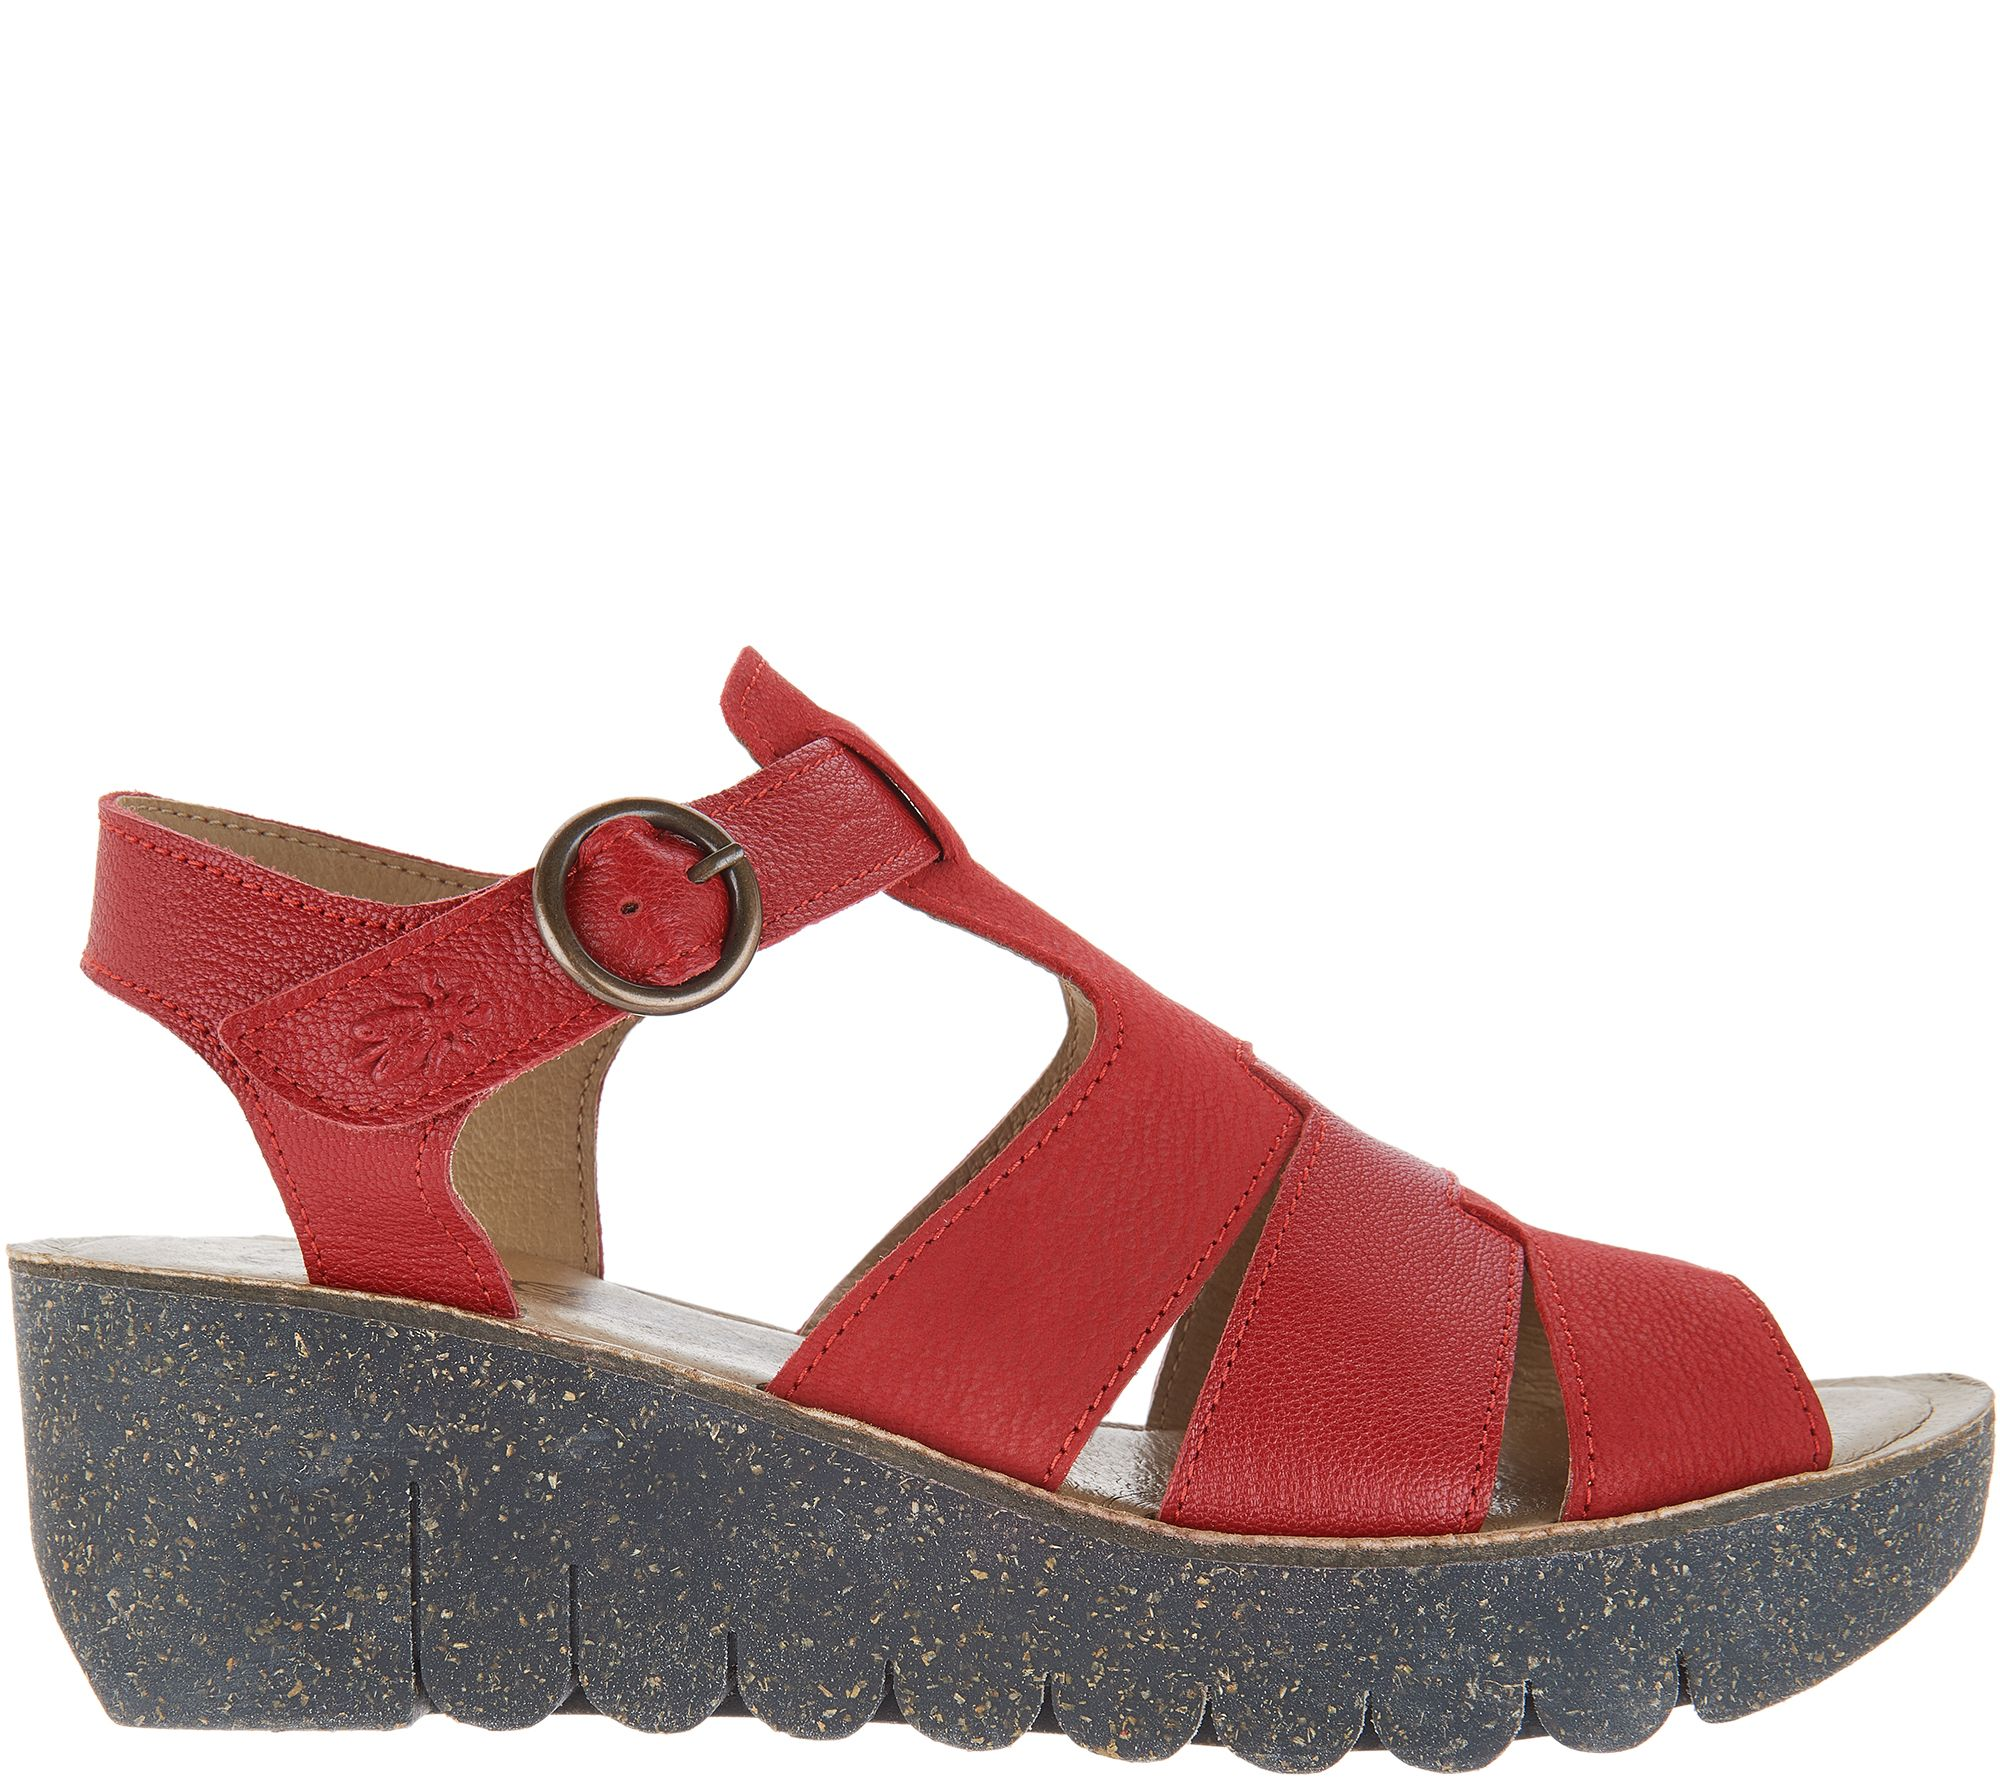 7e894ddcaa2183 FLY London Leather Multi Strap Wedge Sandals - Yuni - Page 1 — QVC.com